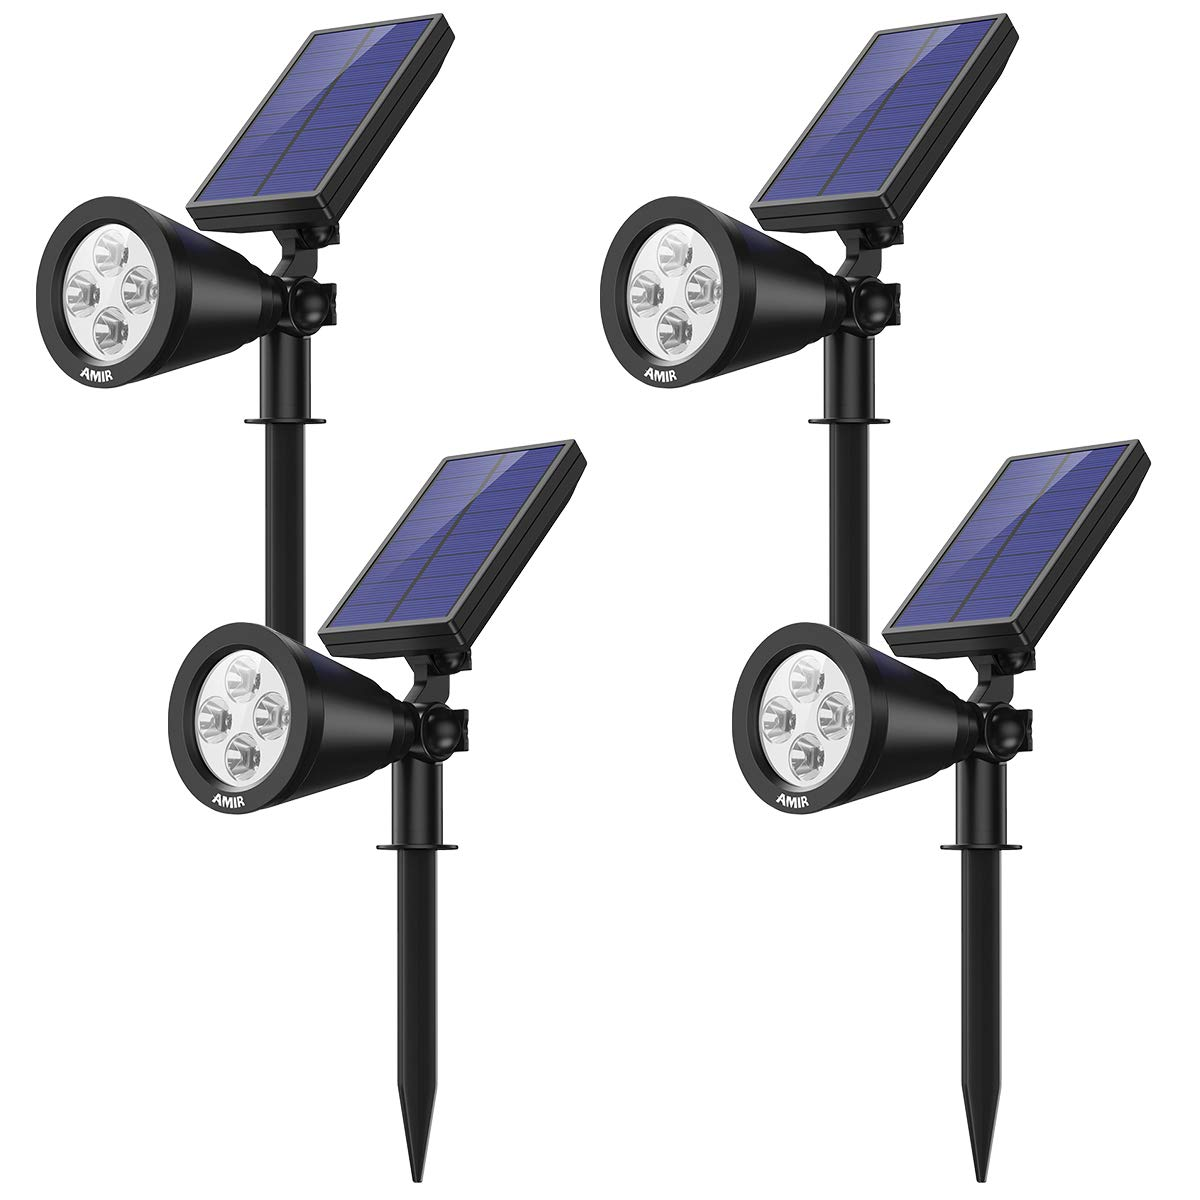 AMIR Solar Spotlights Outdoor Upgraded, Waterproof 4 LED Solar Security Landscape Lights, Adjustable Solar Garden Light with Auto On/Off for Yard Driveway Pathway Pool Patio (4 Pack,White)